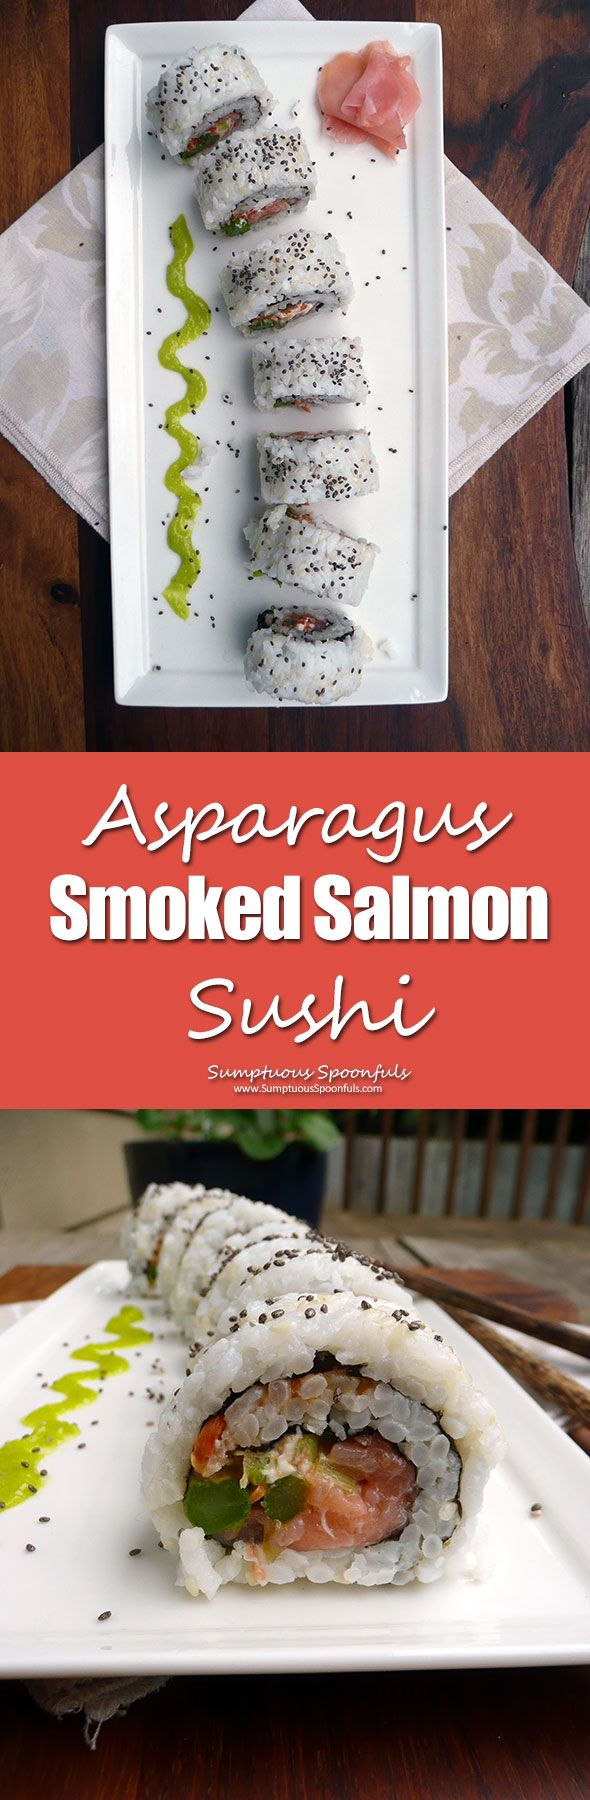 Asparagus Smoked Salmon Sushi ~ Sumptuous Spoonfuls #safe #homemade #sushi…